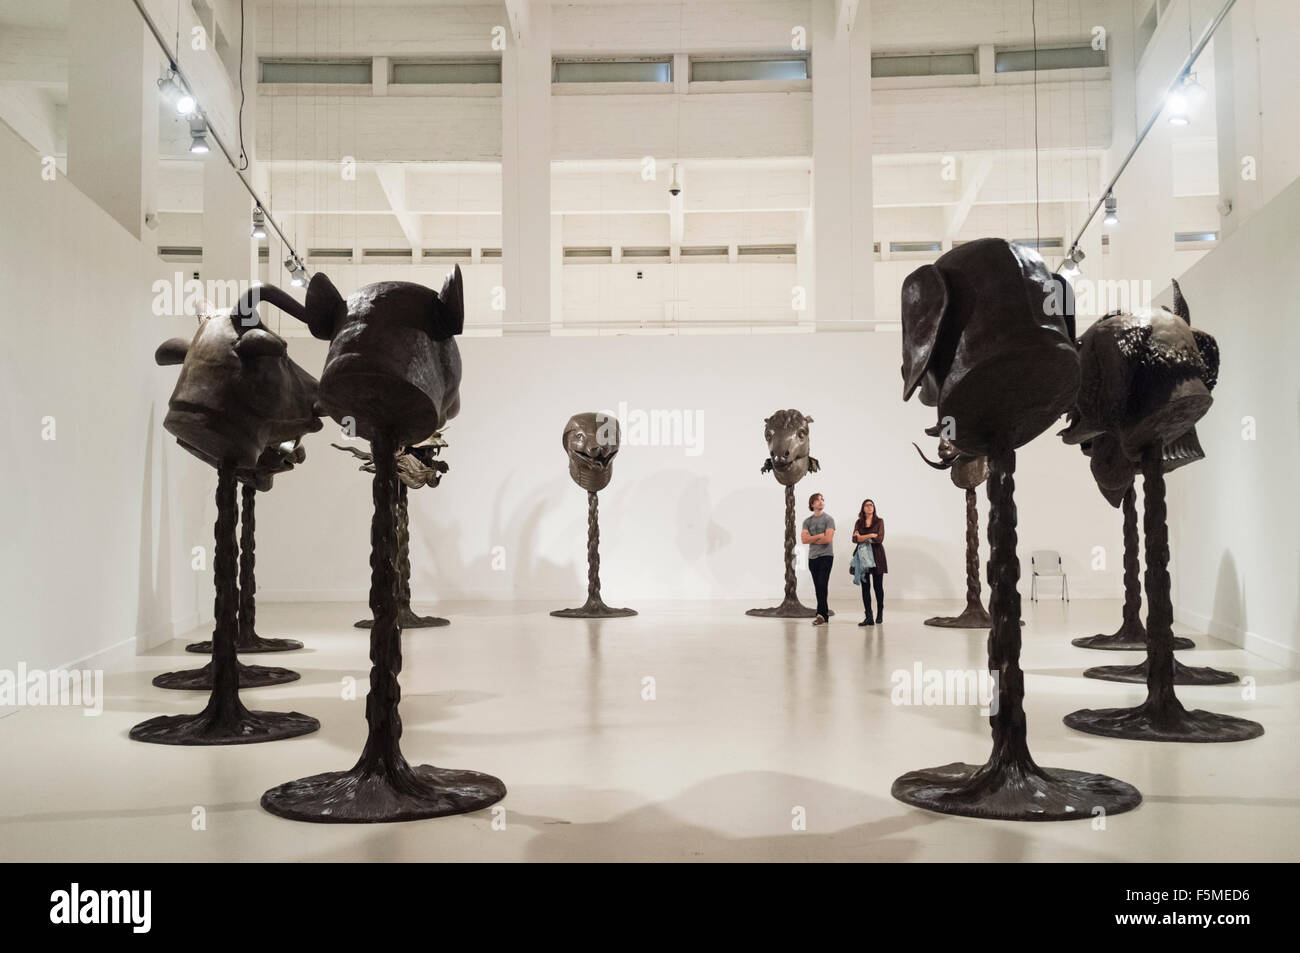 Circle of Animals /Zodiac Heads exhibition by Chinese artist Ai Weiwei at the CAC museum in Malaga, Andalusia, Spain Stock Photo